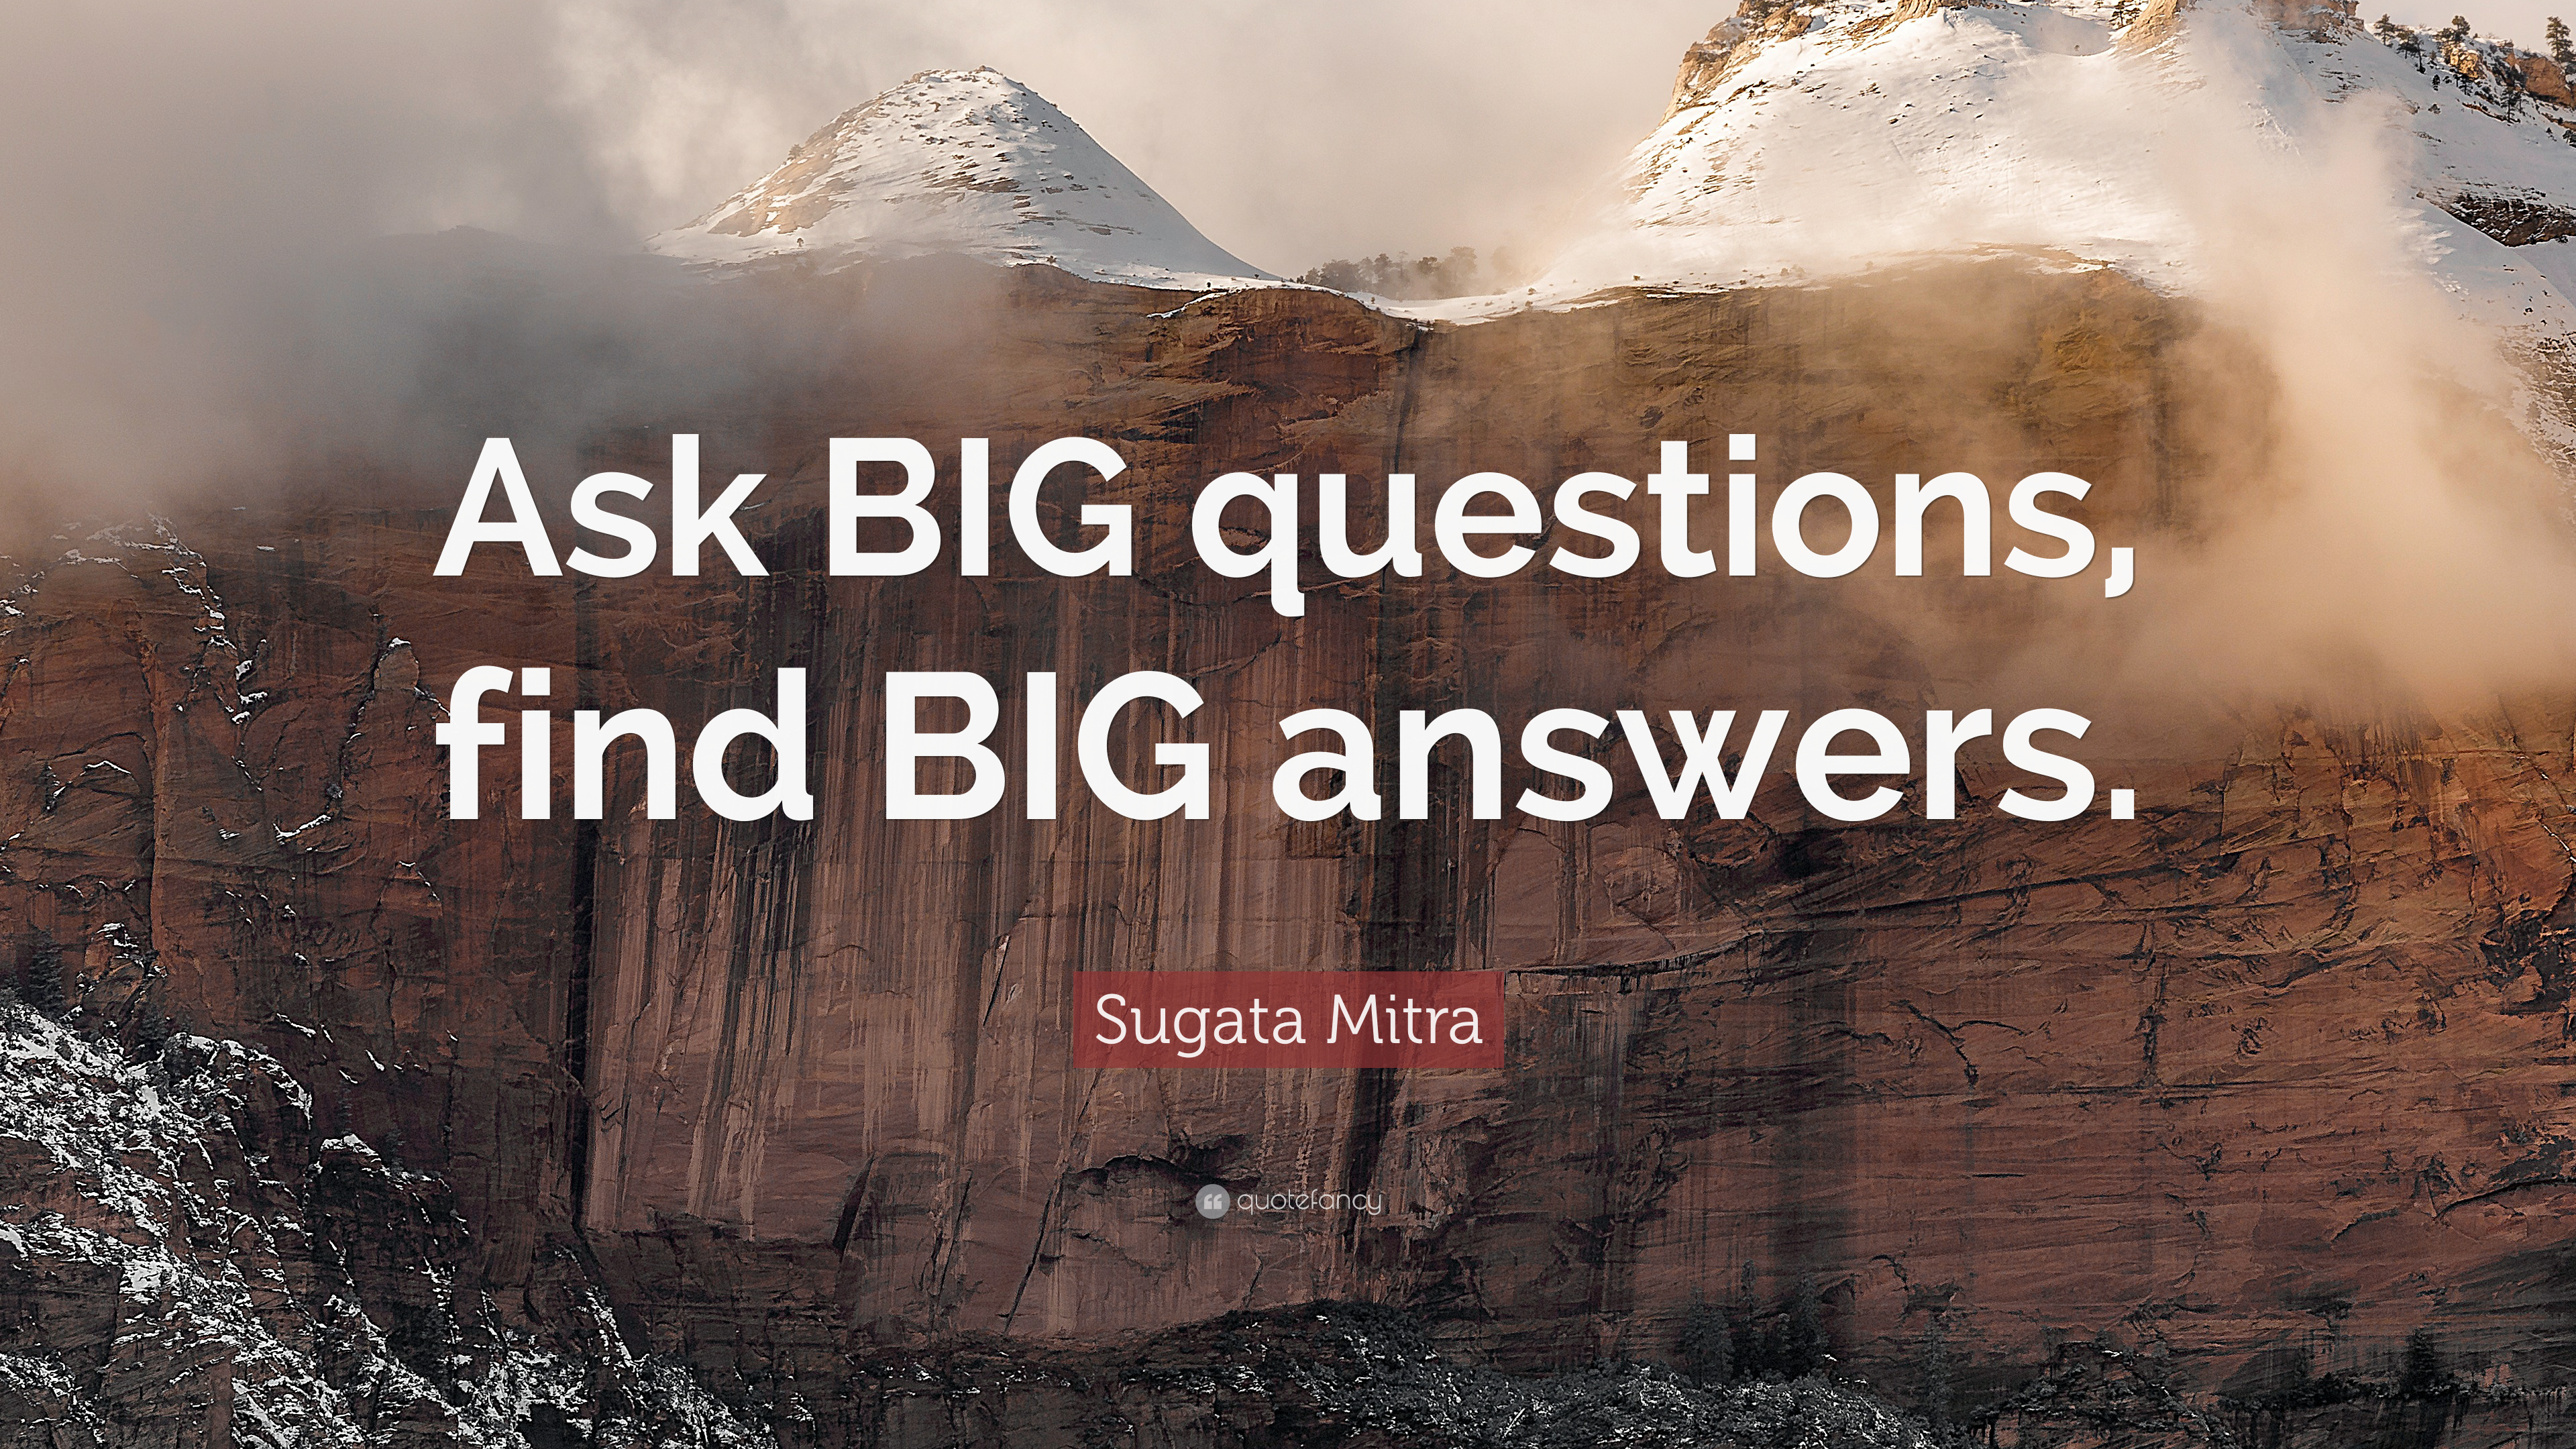 2570853-Sugata-Mitra-Quote-Ask-BIG-questions-find-BIG-answers.jpg